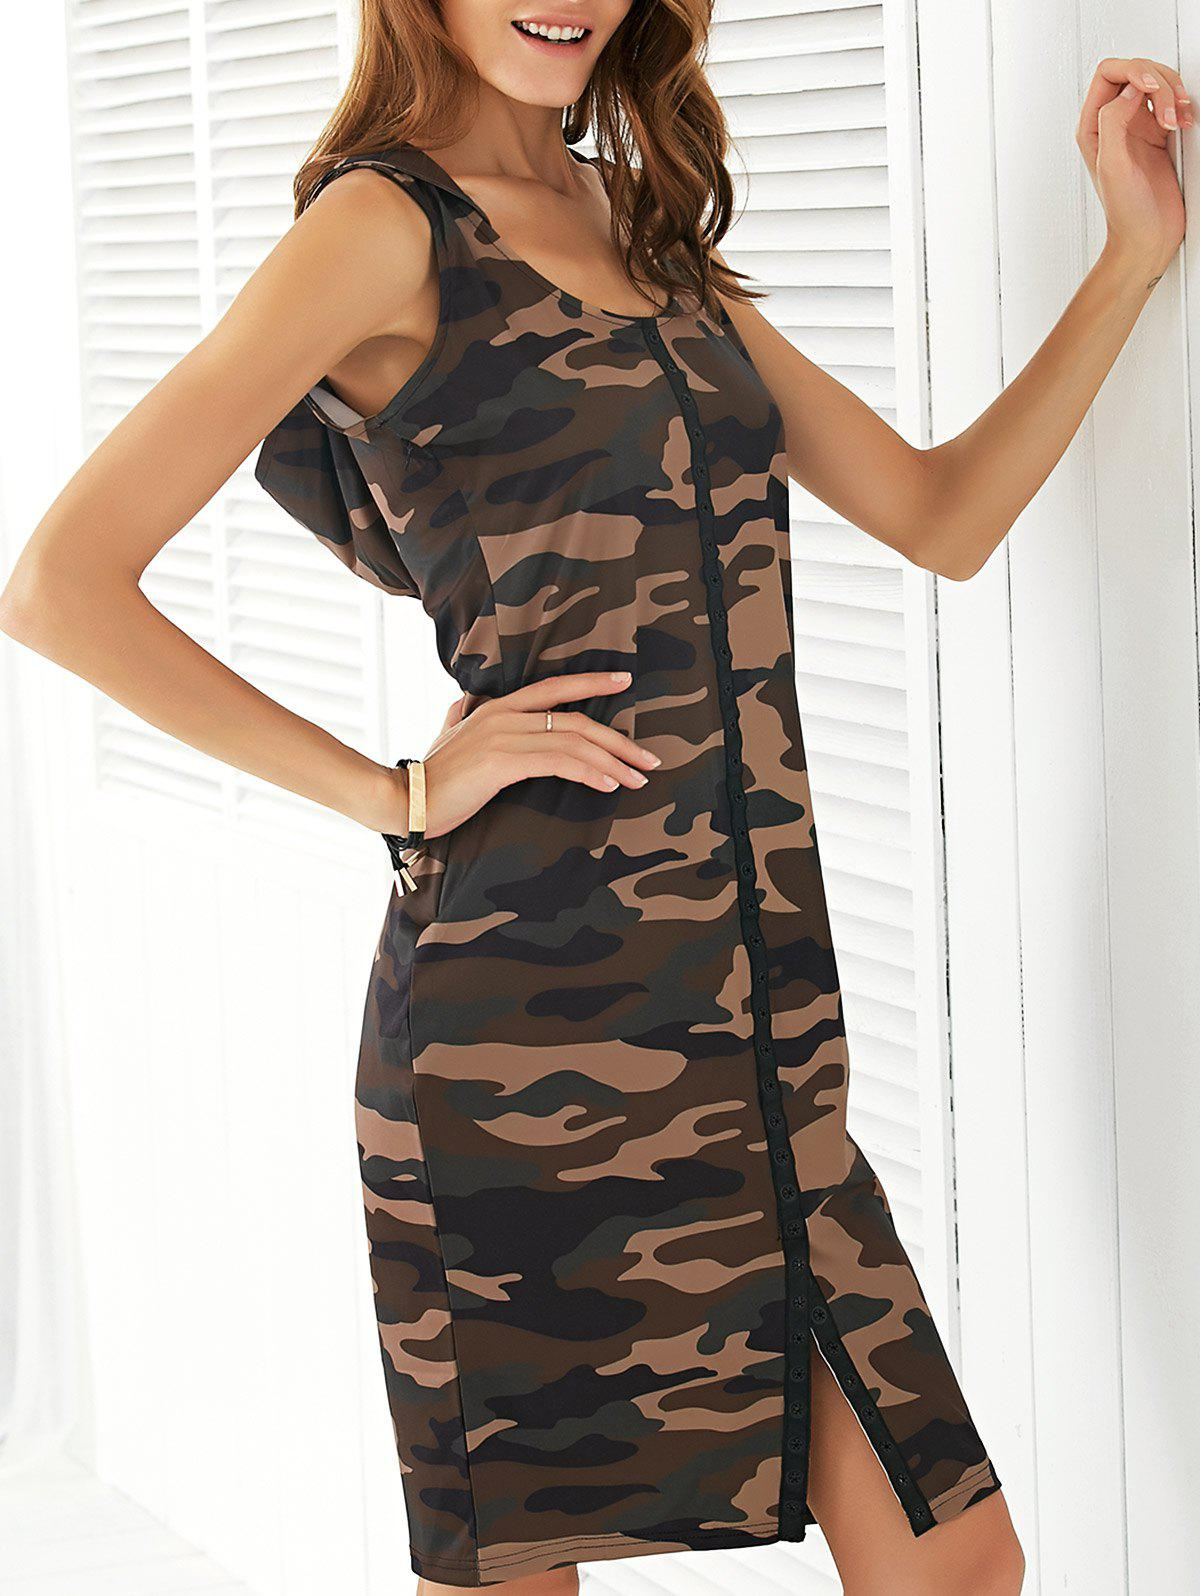 Fashionable Hooded Camo Print Women's Dress - CAMOUFLAGE L